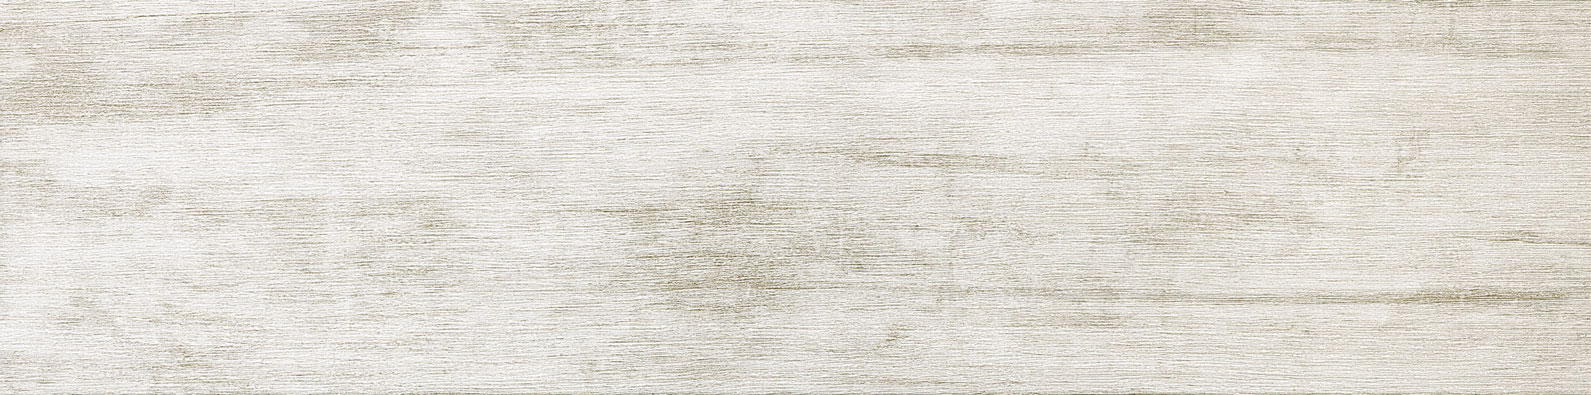 Rustic Maple White